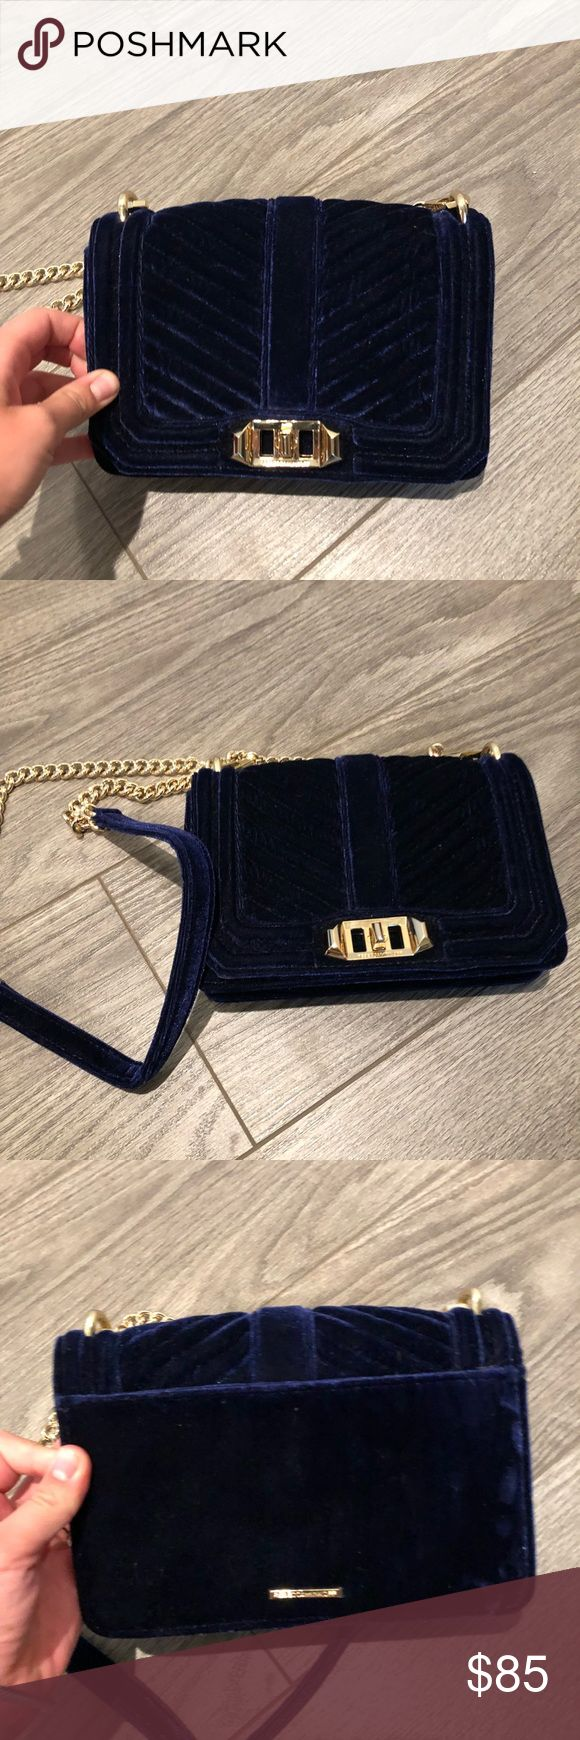 Rebecca Minkoff small chevron quilted crossbody Small love crossbody in blue velvet. Used ONCE! Excellent condition. Navy blue velvet with gold hardware. Purchased at Nordstrom. Rebecca Minkoff Bags Crossbody Bags